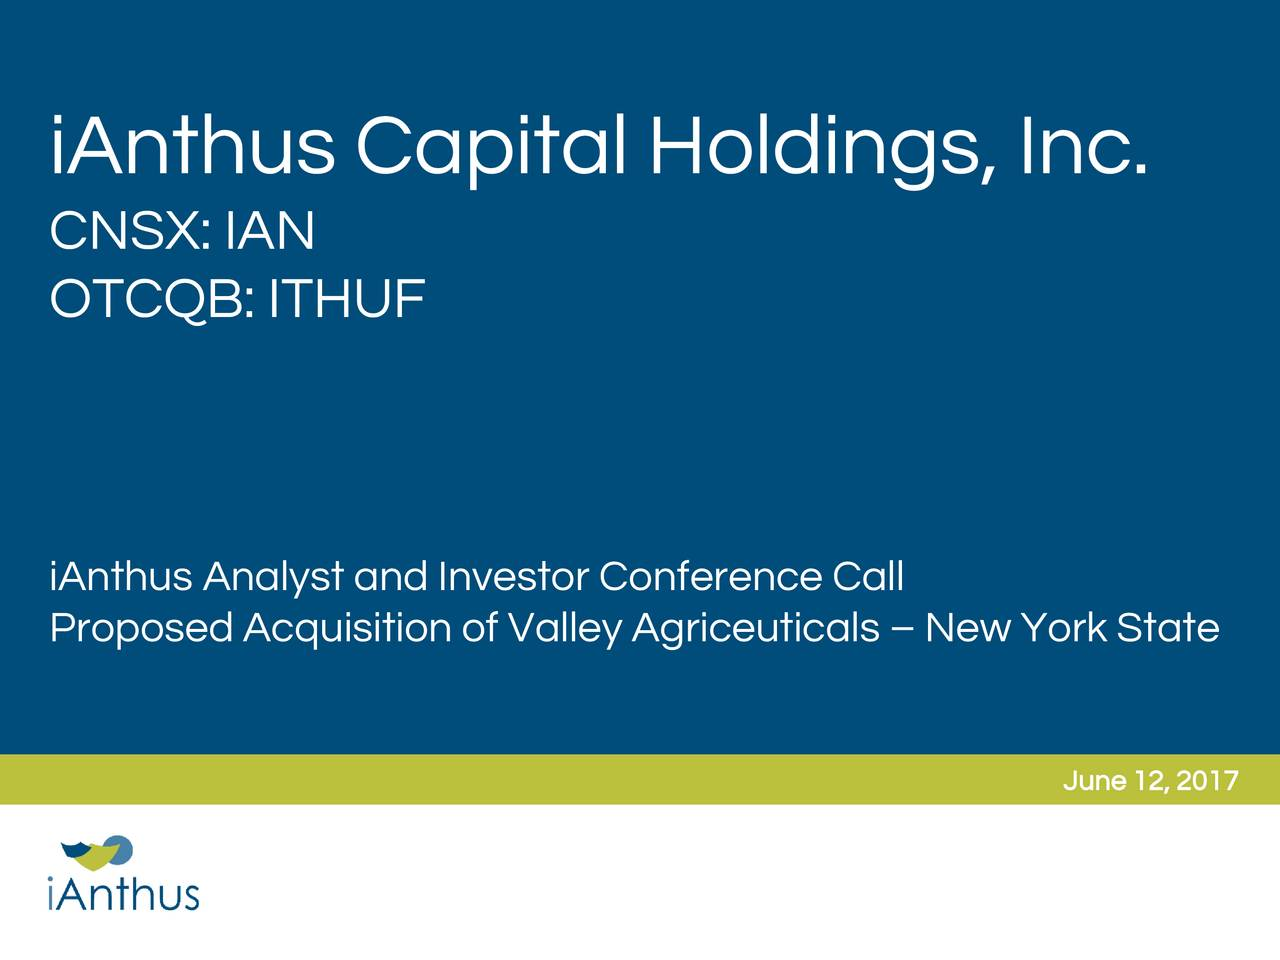 CNSX: IAN OTCQB: ITHUF iAnthus Analyst and Investor Conference Call Proposed Acquisition of Valley Agriceuticals  New York State June 12, 2017